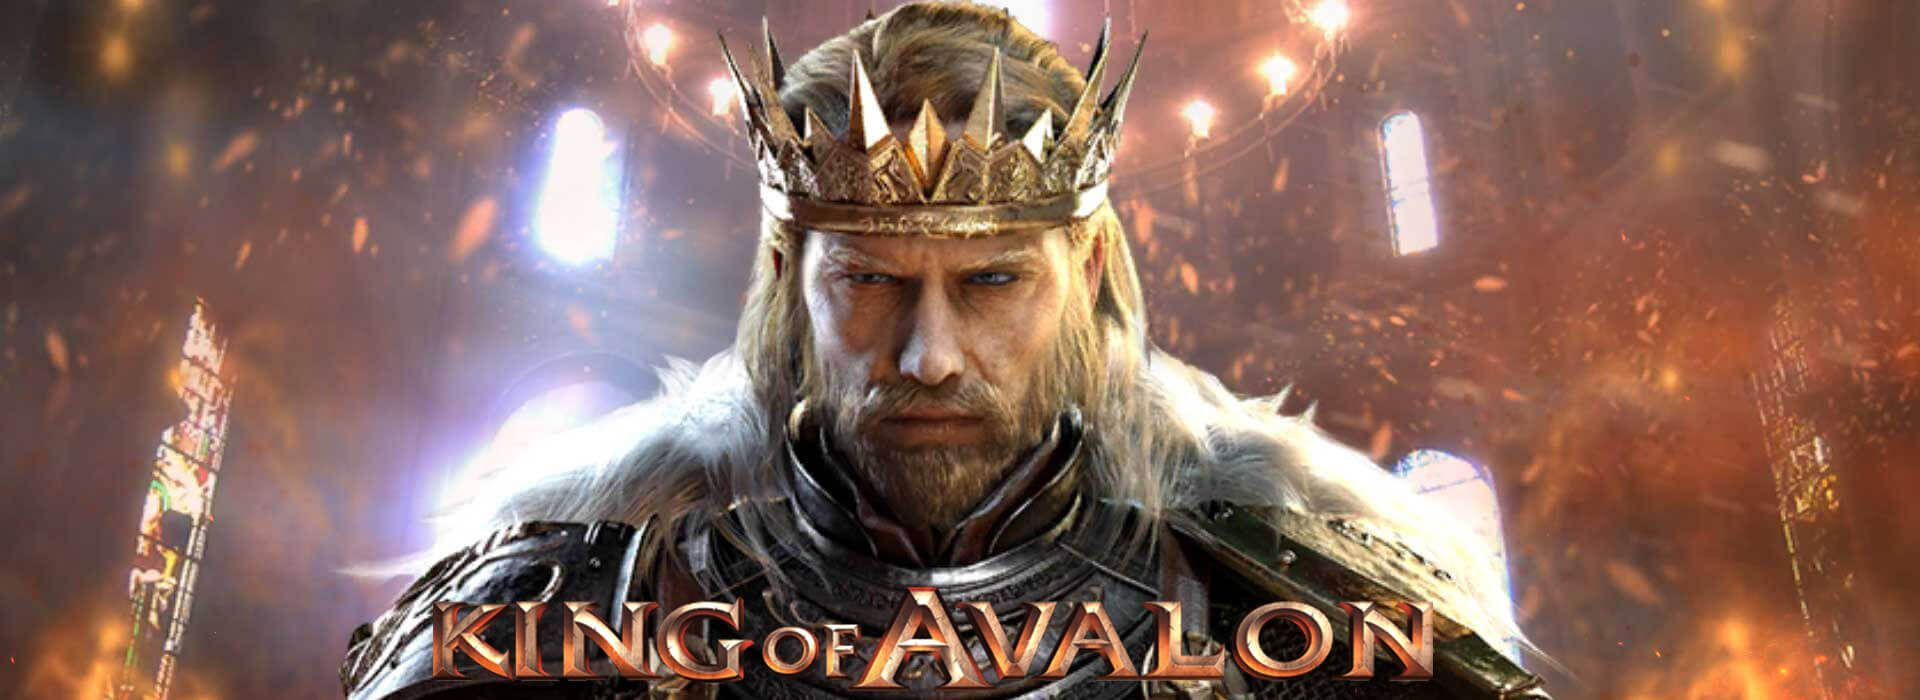 King of Avalon on PC